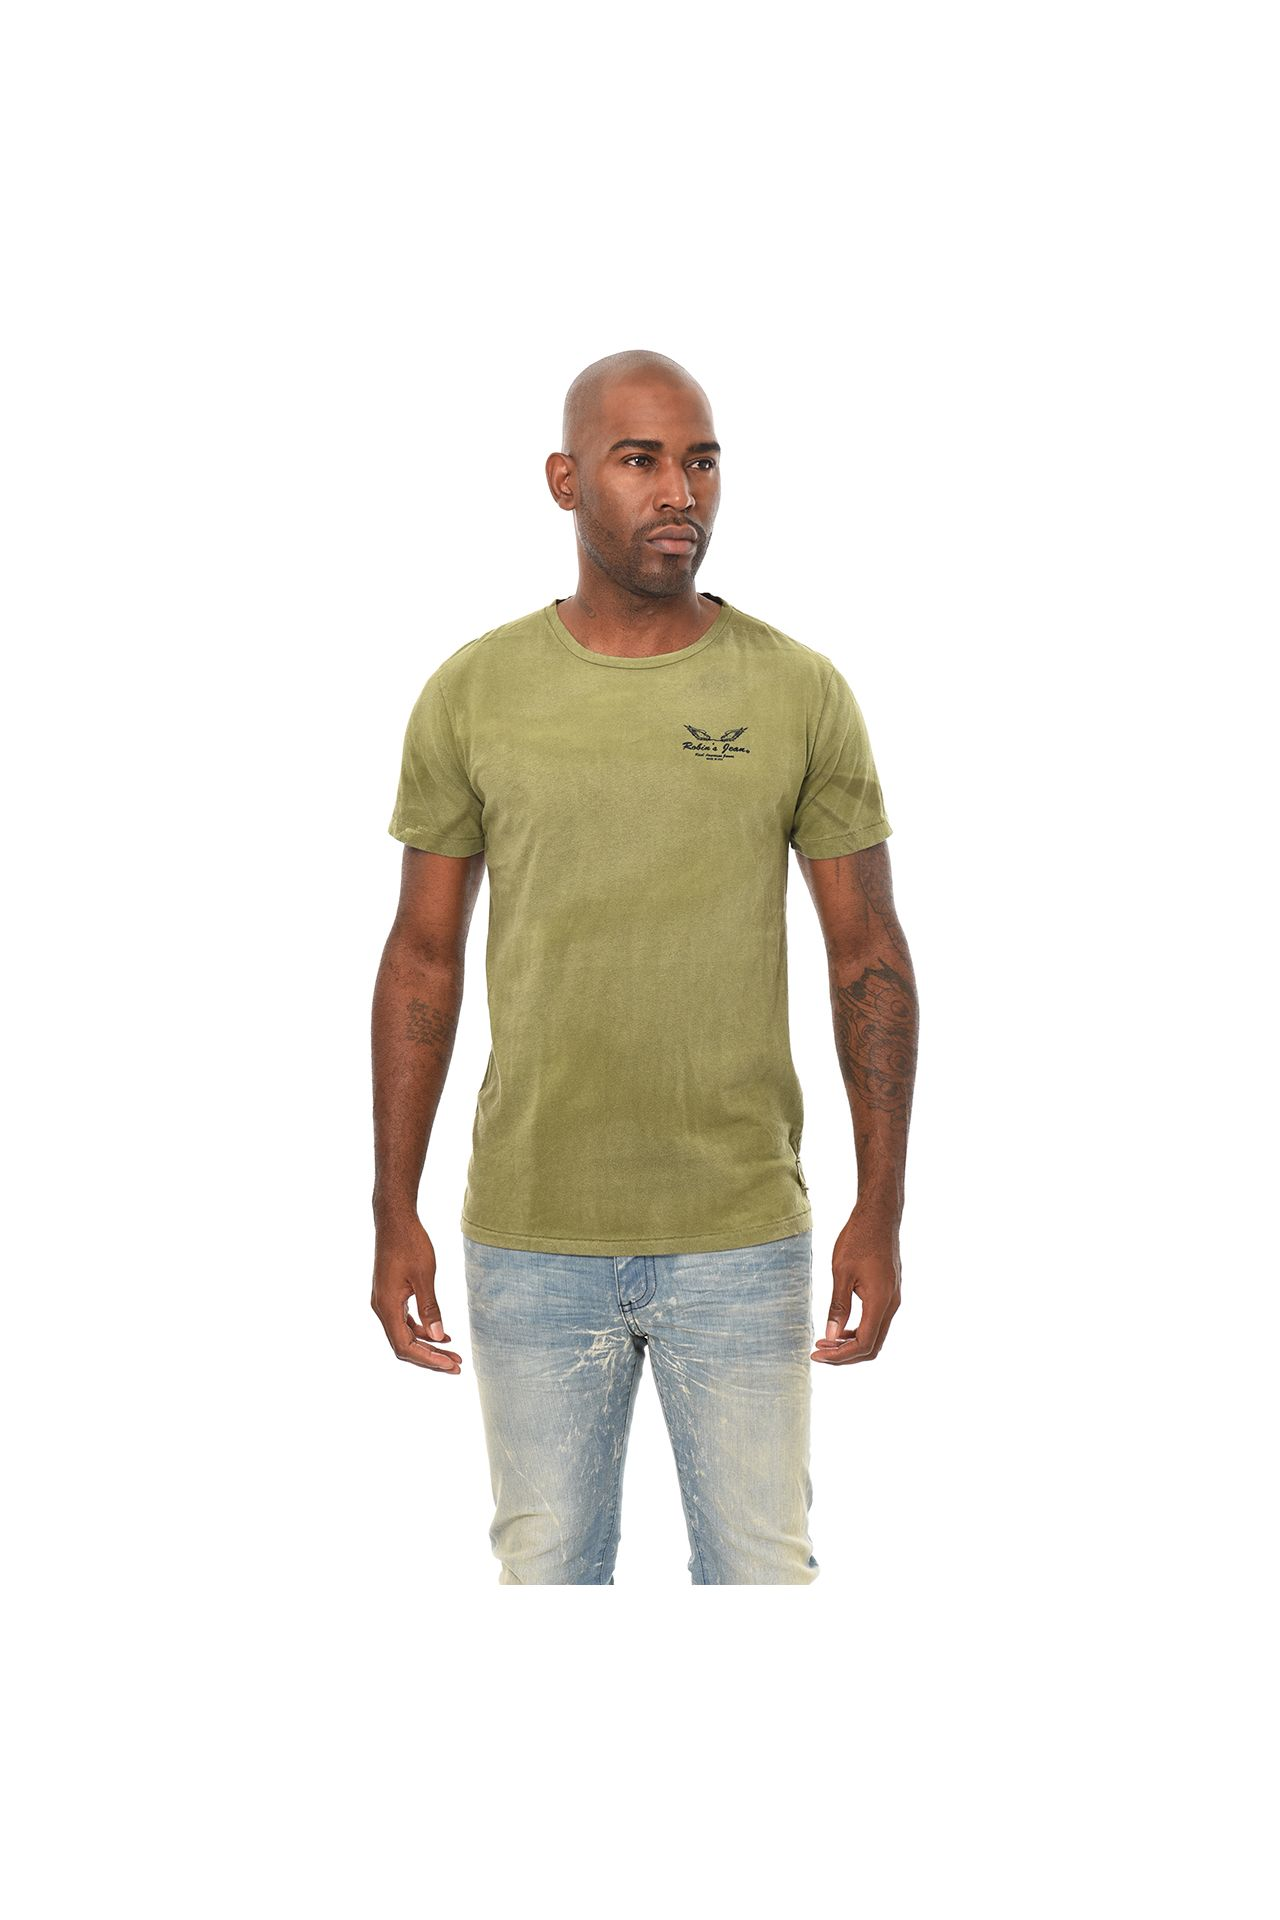 BAR WINGS BLACK FOIL TEE IN 4D DARK  GREEN TEA